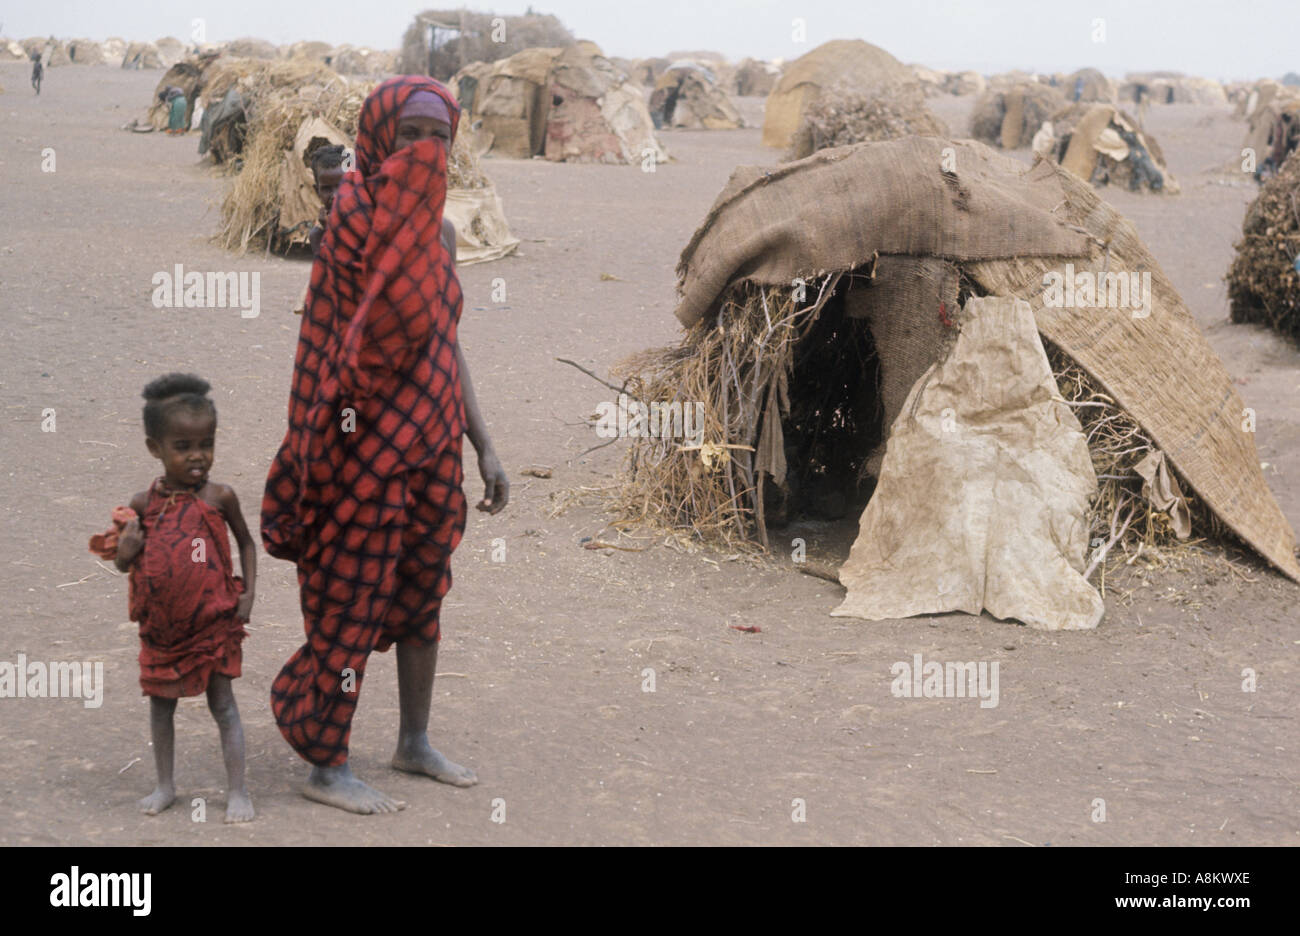 Ogaden Stock Photos & Ogaden Stock Images - Alamy